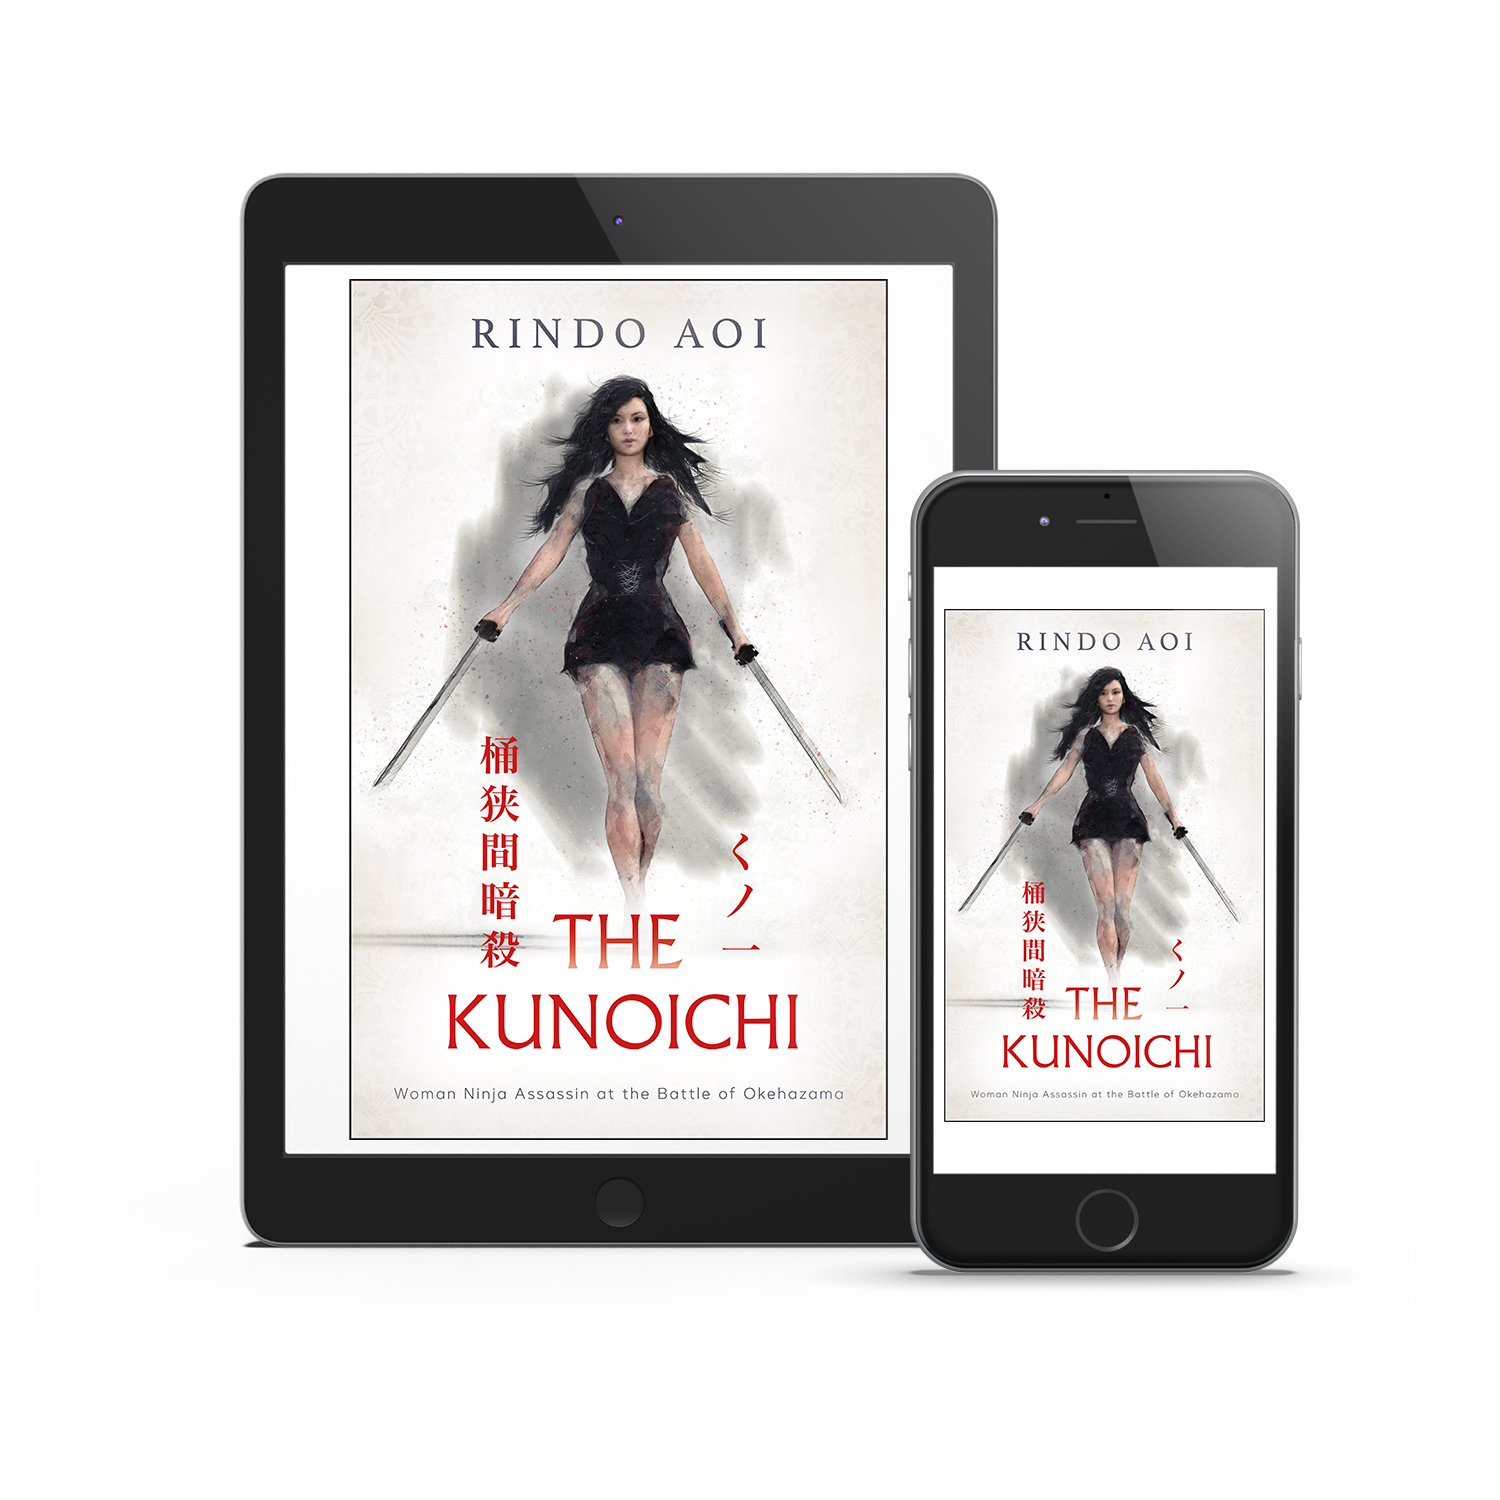 'The Kunoichi' is a sweeping Jpanese historical fantasy, by Rindo Aoi. The book cover was designed by Mark Thomas, of coverness.com. To find out more about my book design services, please visit www.coverness.com.